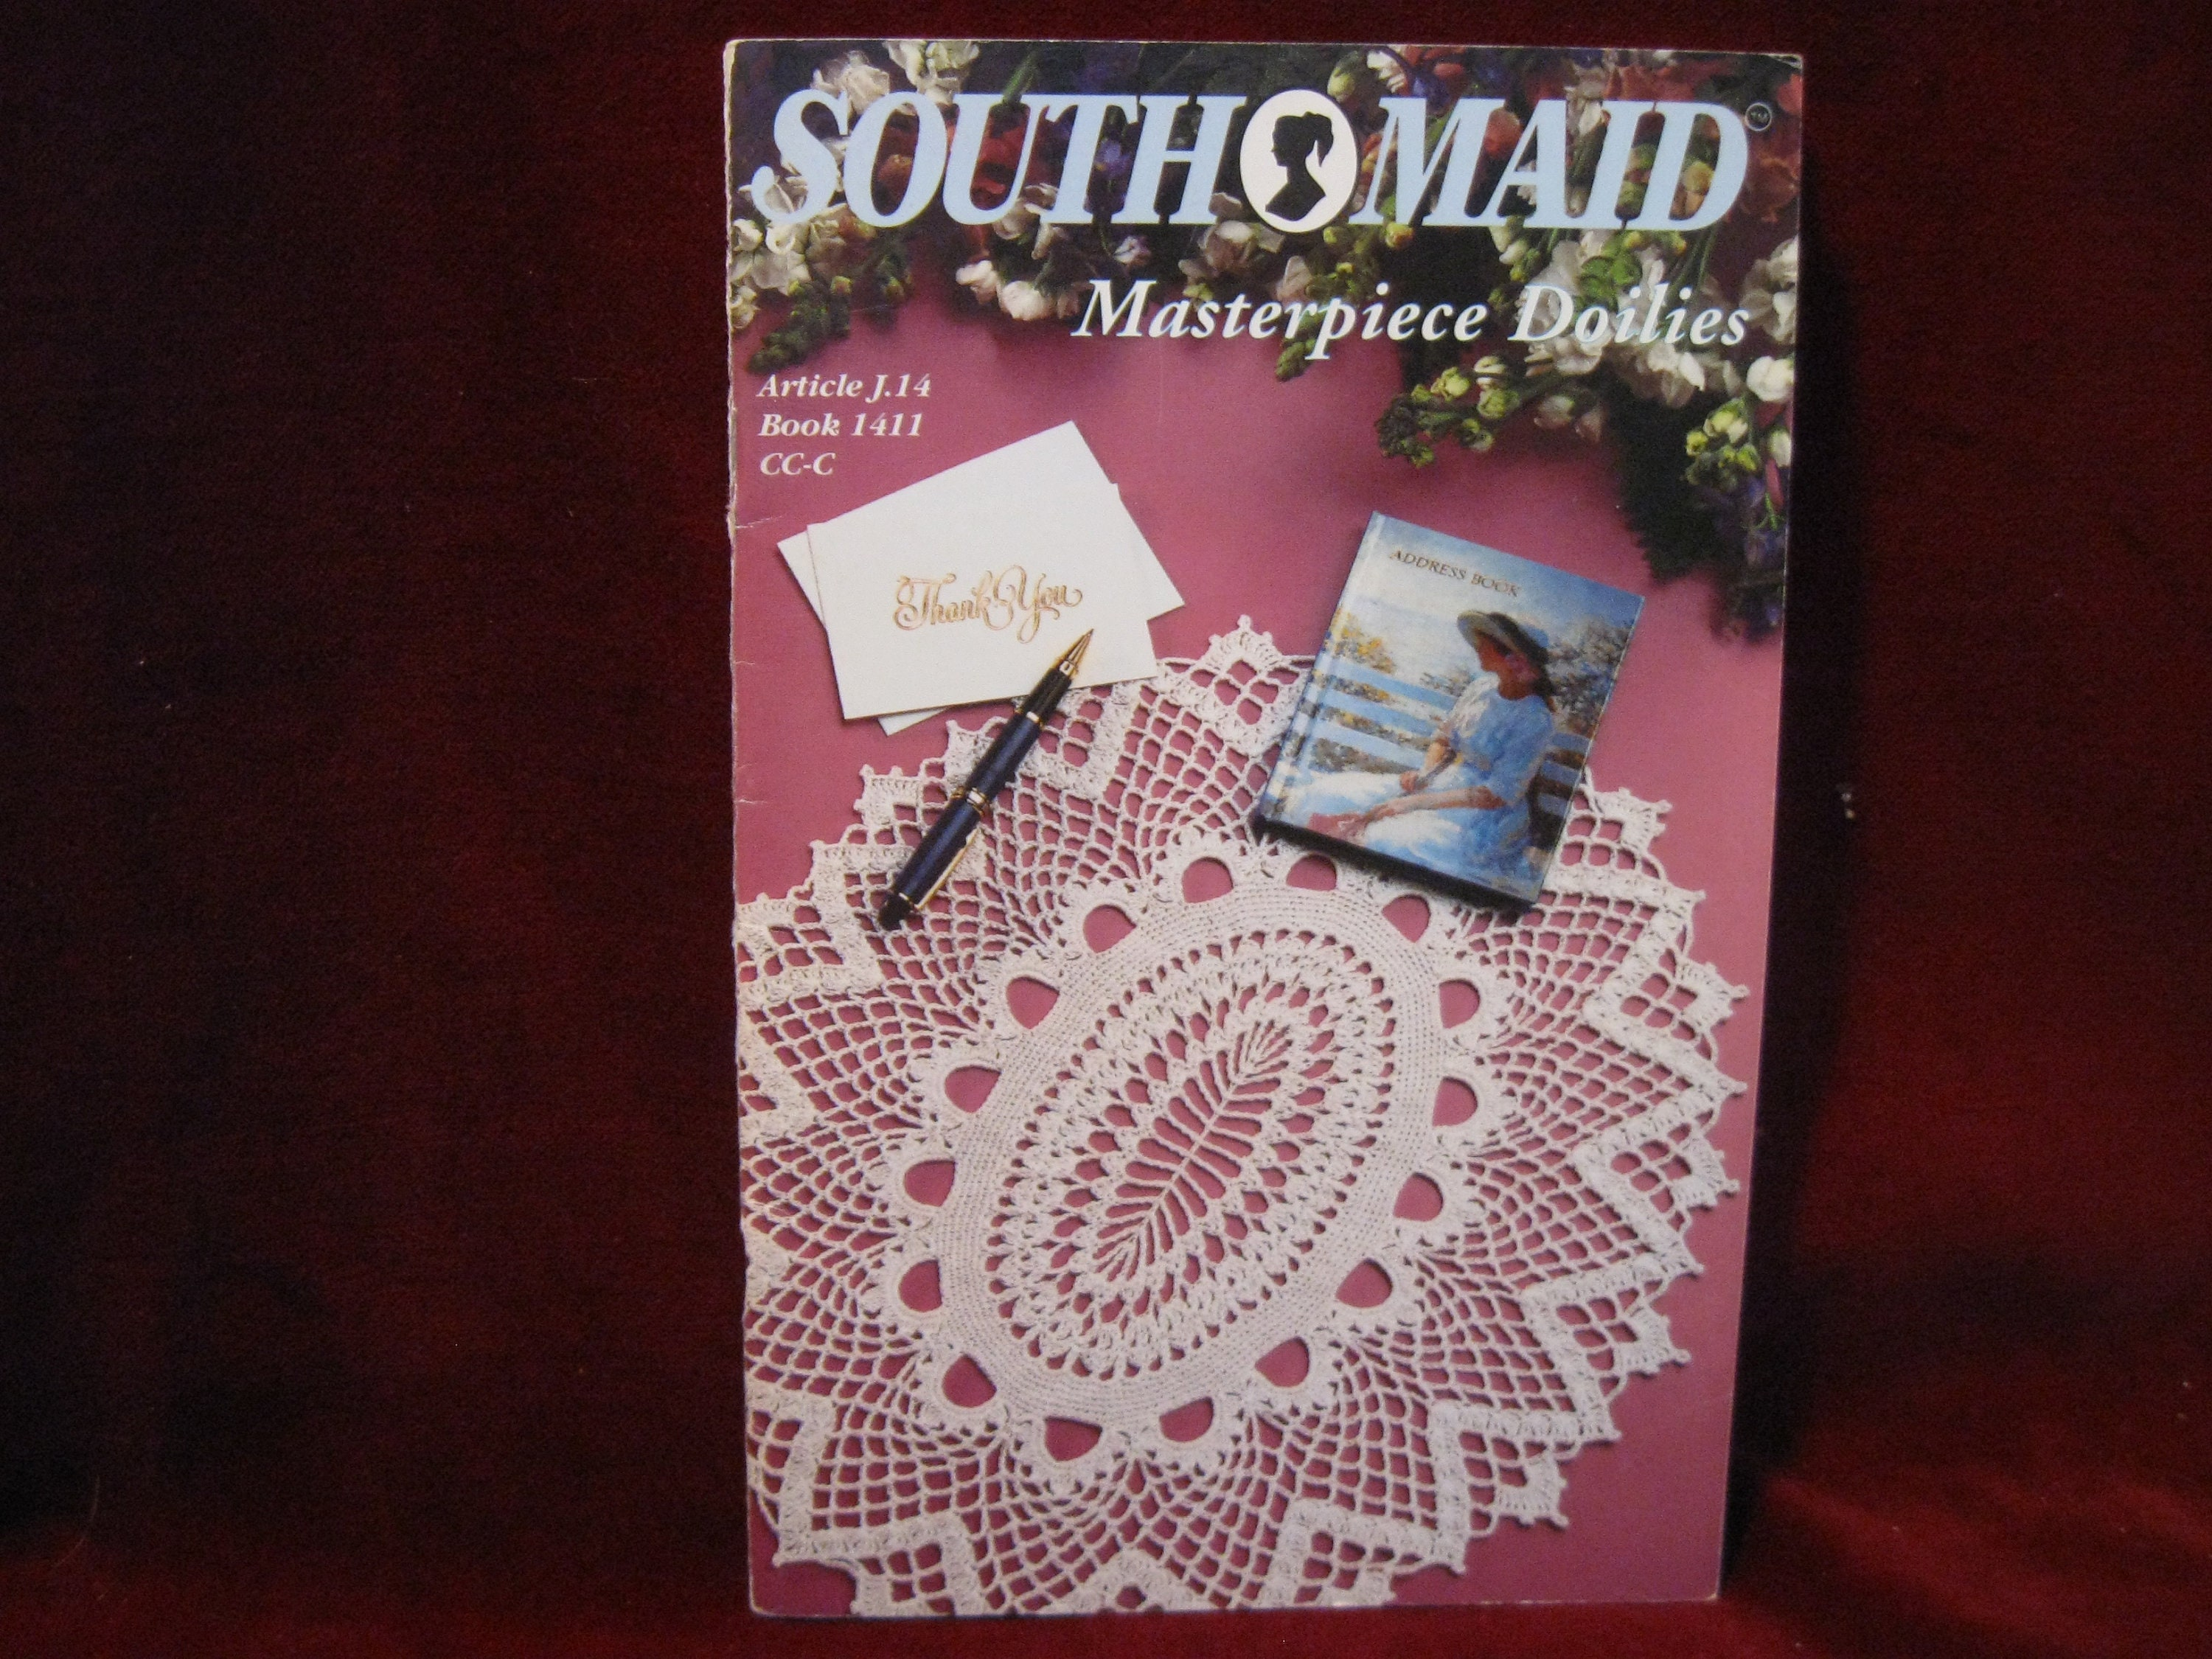 South Maid Masterpiece Doilies Crochet Pattern Etsy